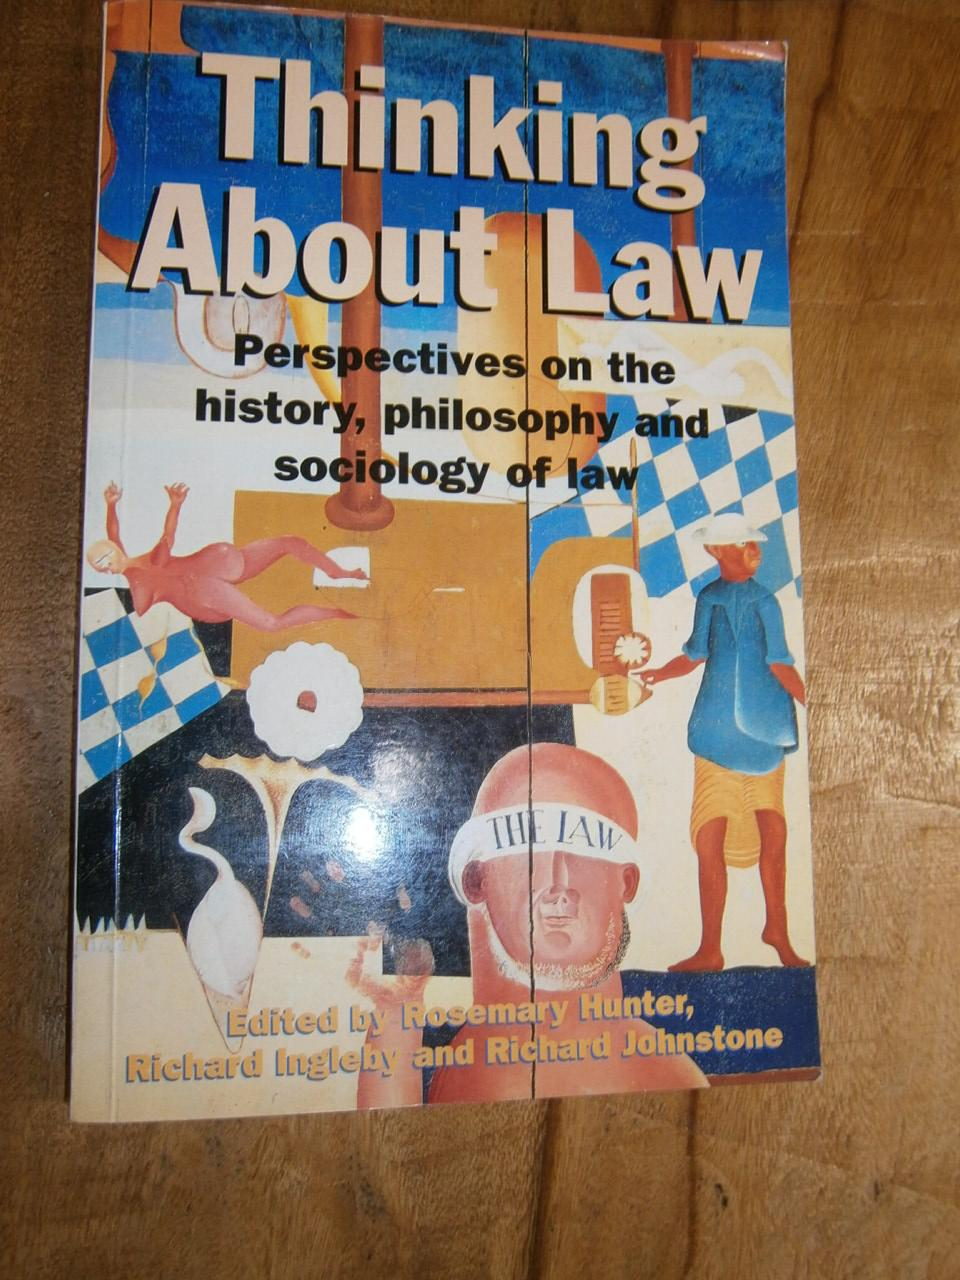 THINKING ABOUT LAW: PERSPECTIVES ON THE